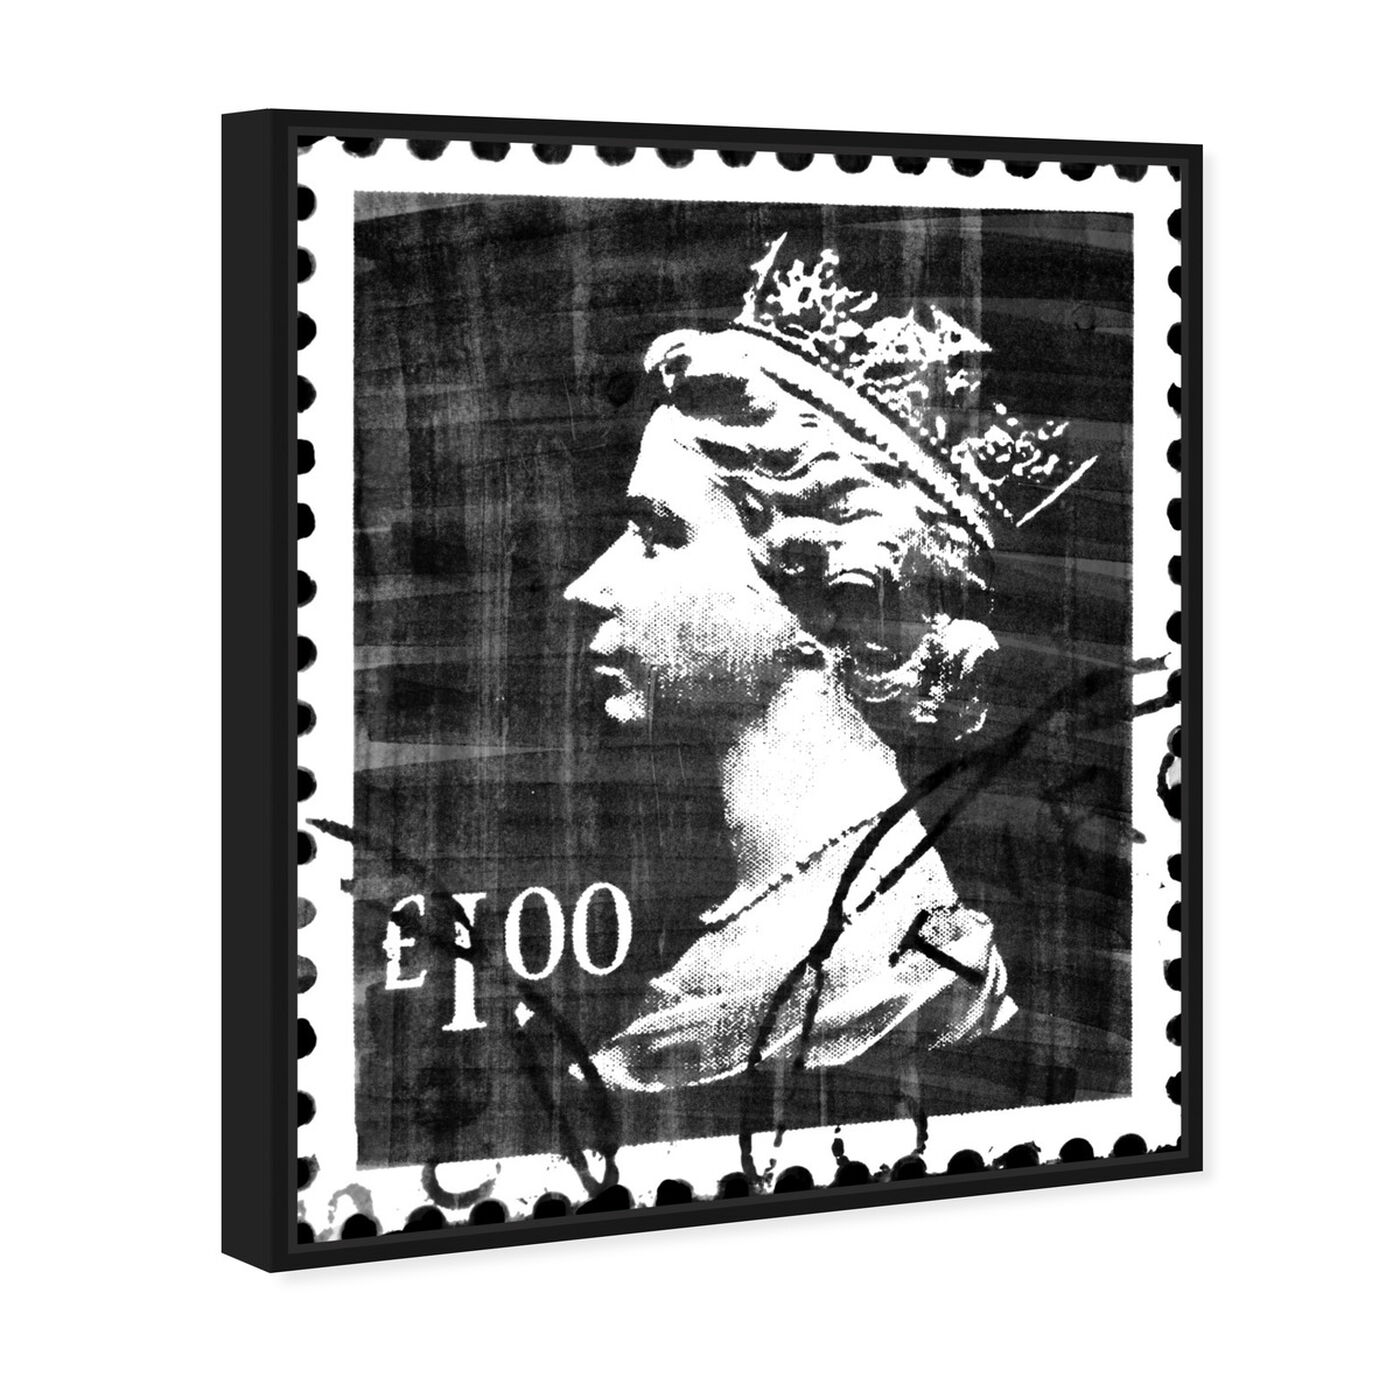 Angled view of Save The Queen Two featuring advertising and posters art.